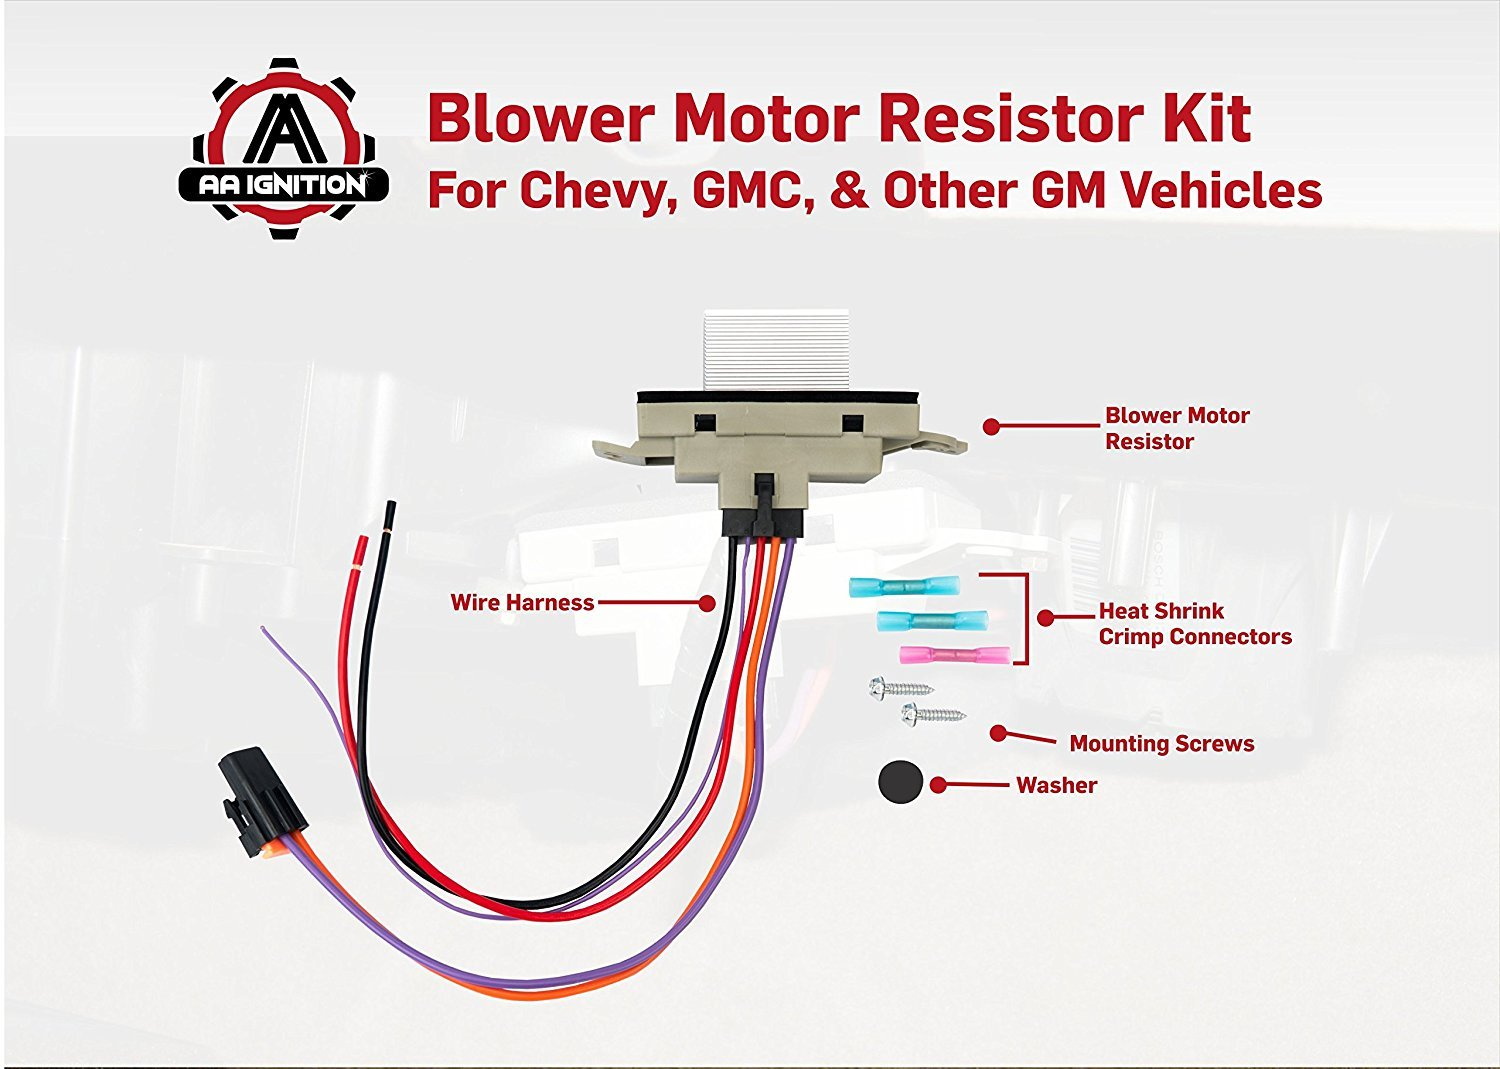 Blower Motor Resistor Complete Kit With Harness Gm Heater Wiring Diagram Replaces 15 81773 89018778 89019351 1581773 Fits Chevy Silverado Tahoe